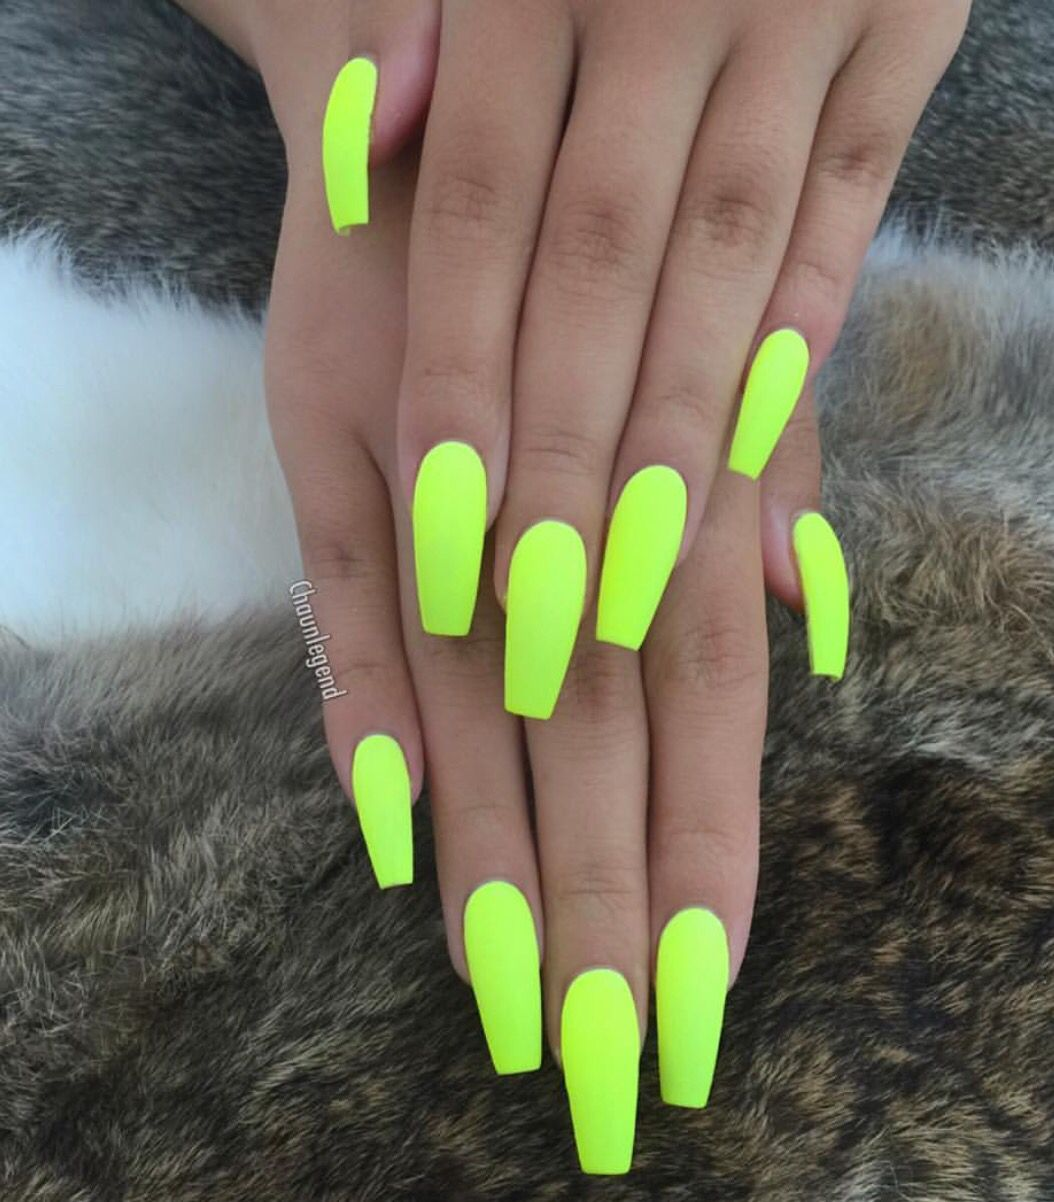 Summer Neon Nails Bright As You Like Yellow Manicure On Ballerina Shaped Long